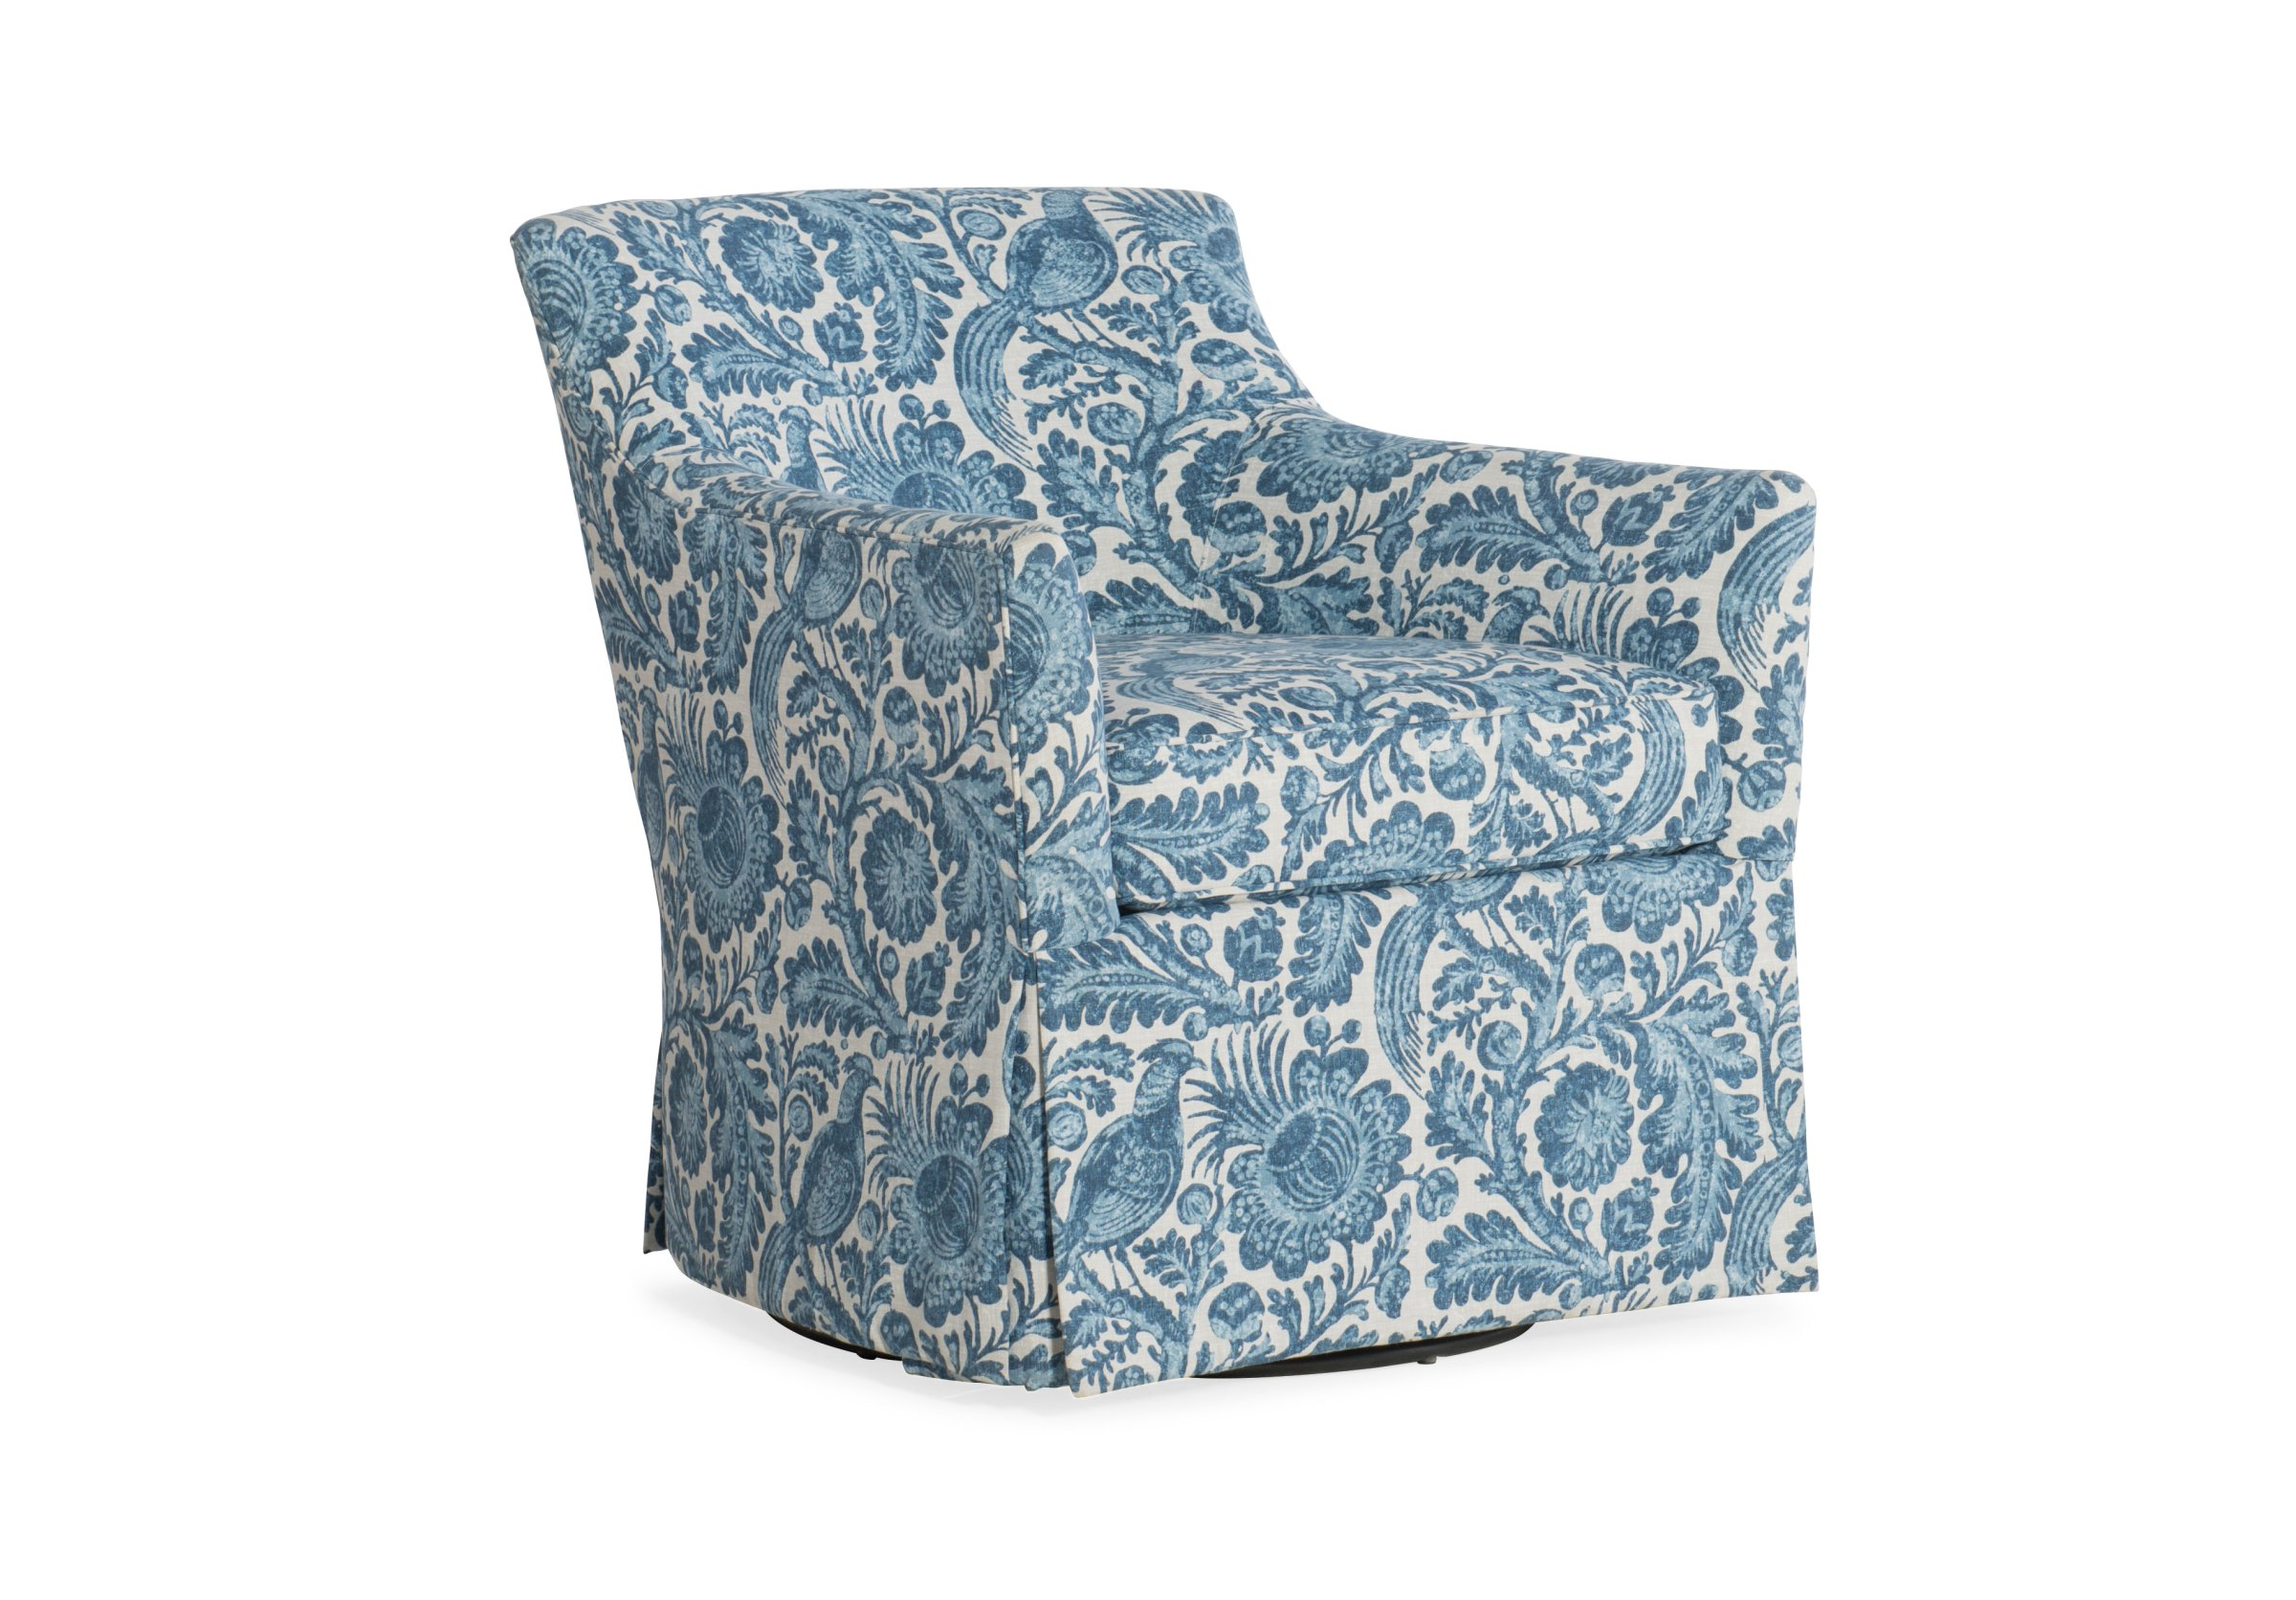 Sam Moore Meghan swivel chair